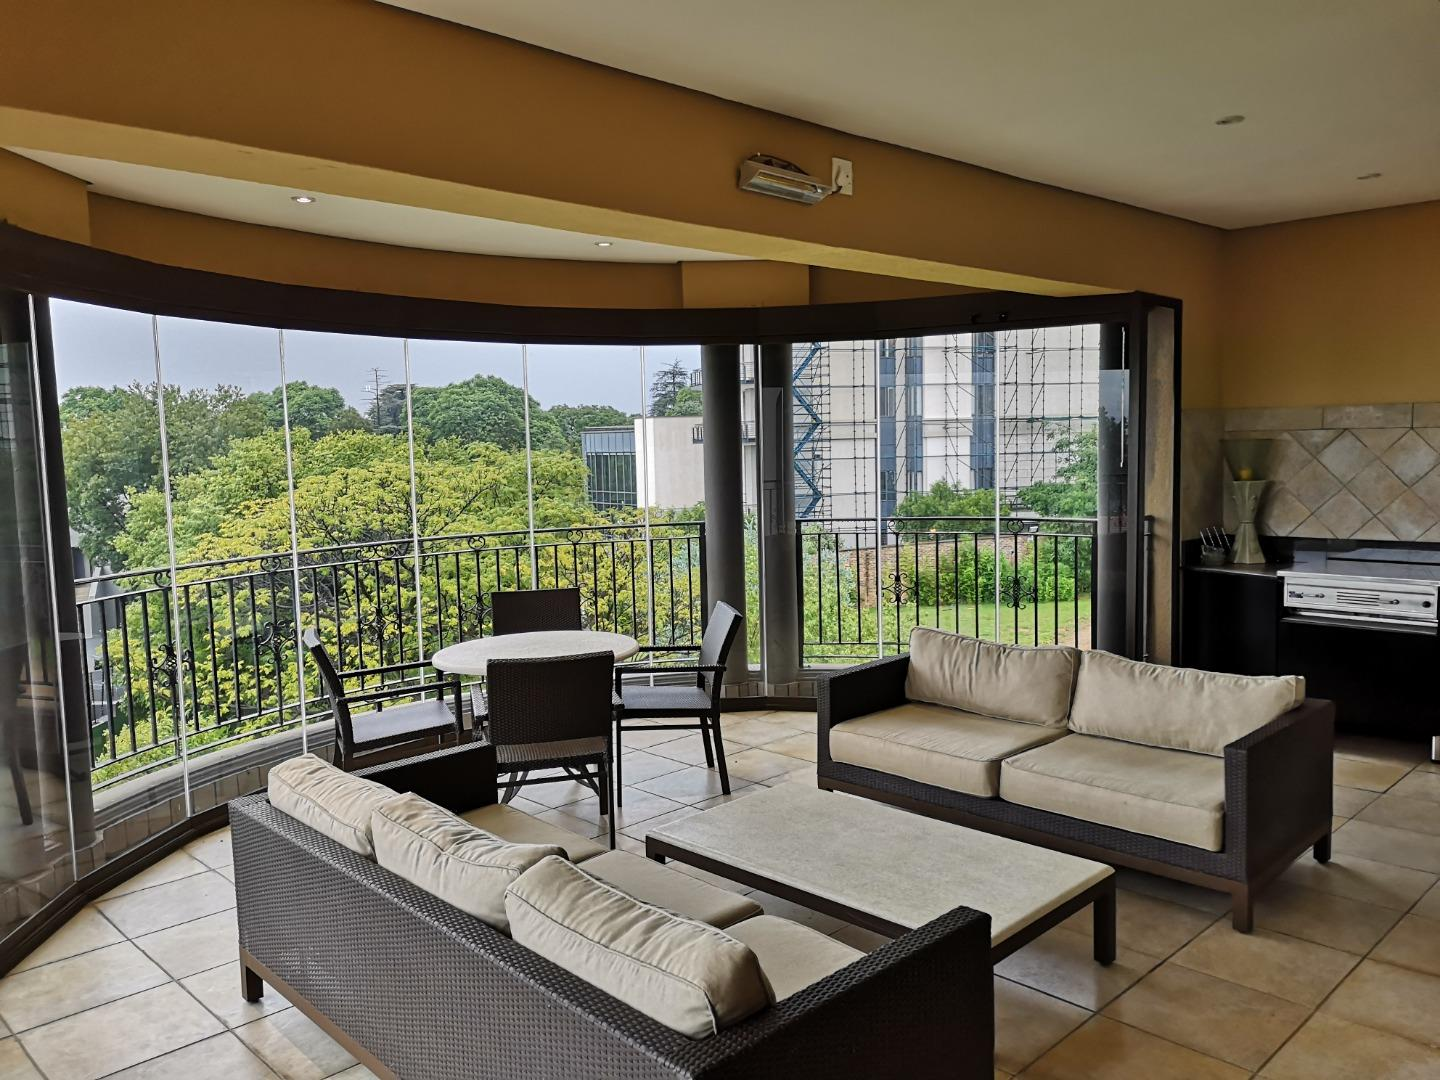 2 Bedroom  Penthouse for Sale in Sandton - Gauteng